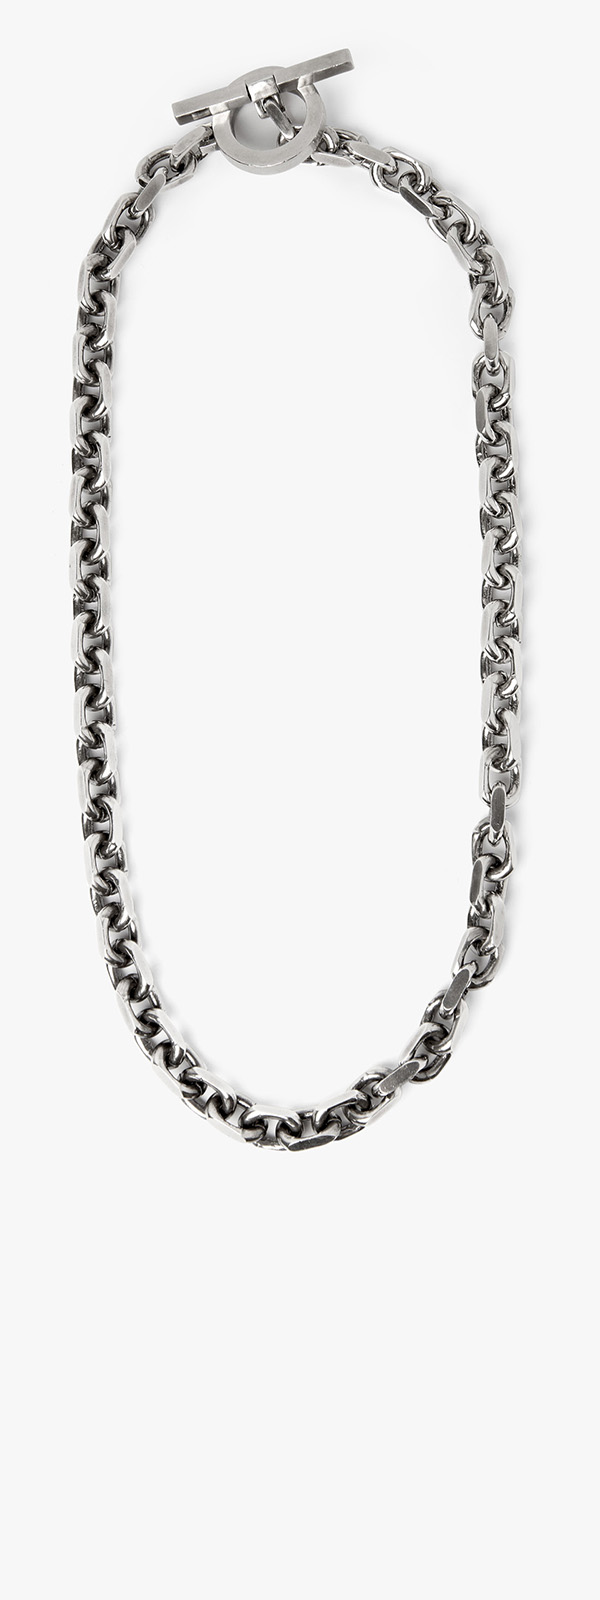 Image of Mixed Chain Necklace 109